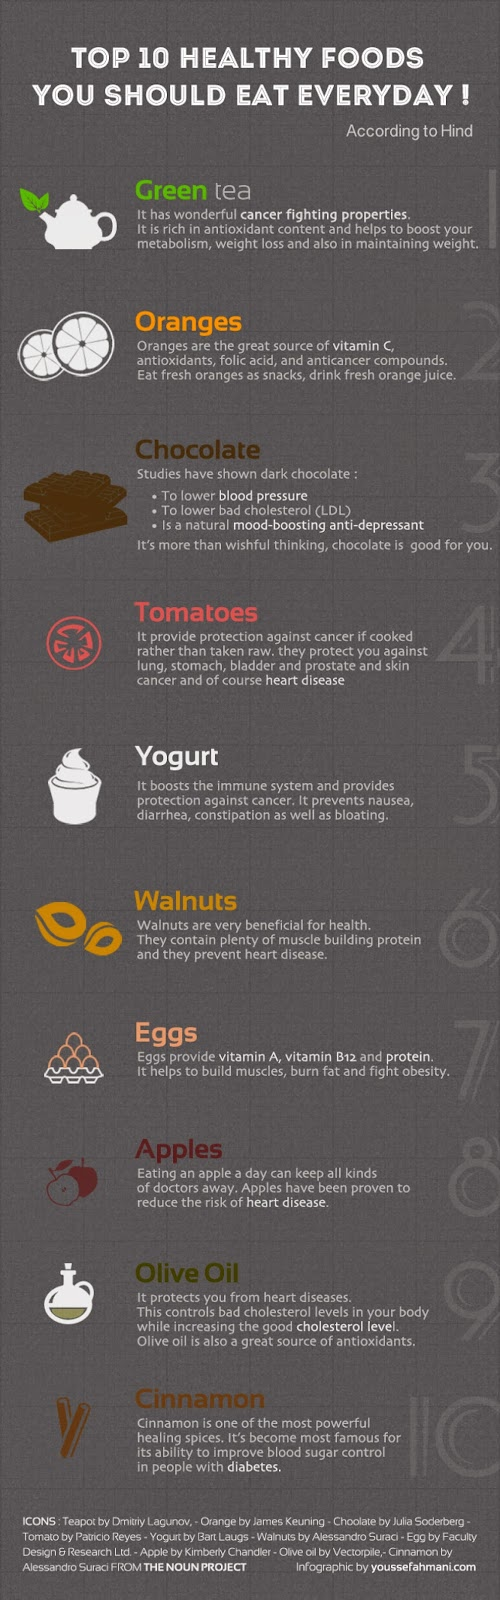 10 Healthy Foods That Should Be Part Of Your Daily Diet